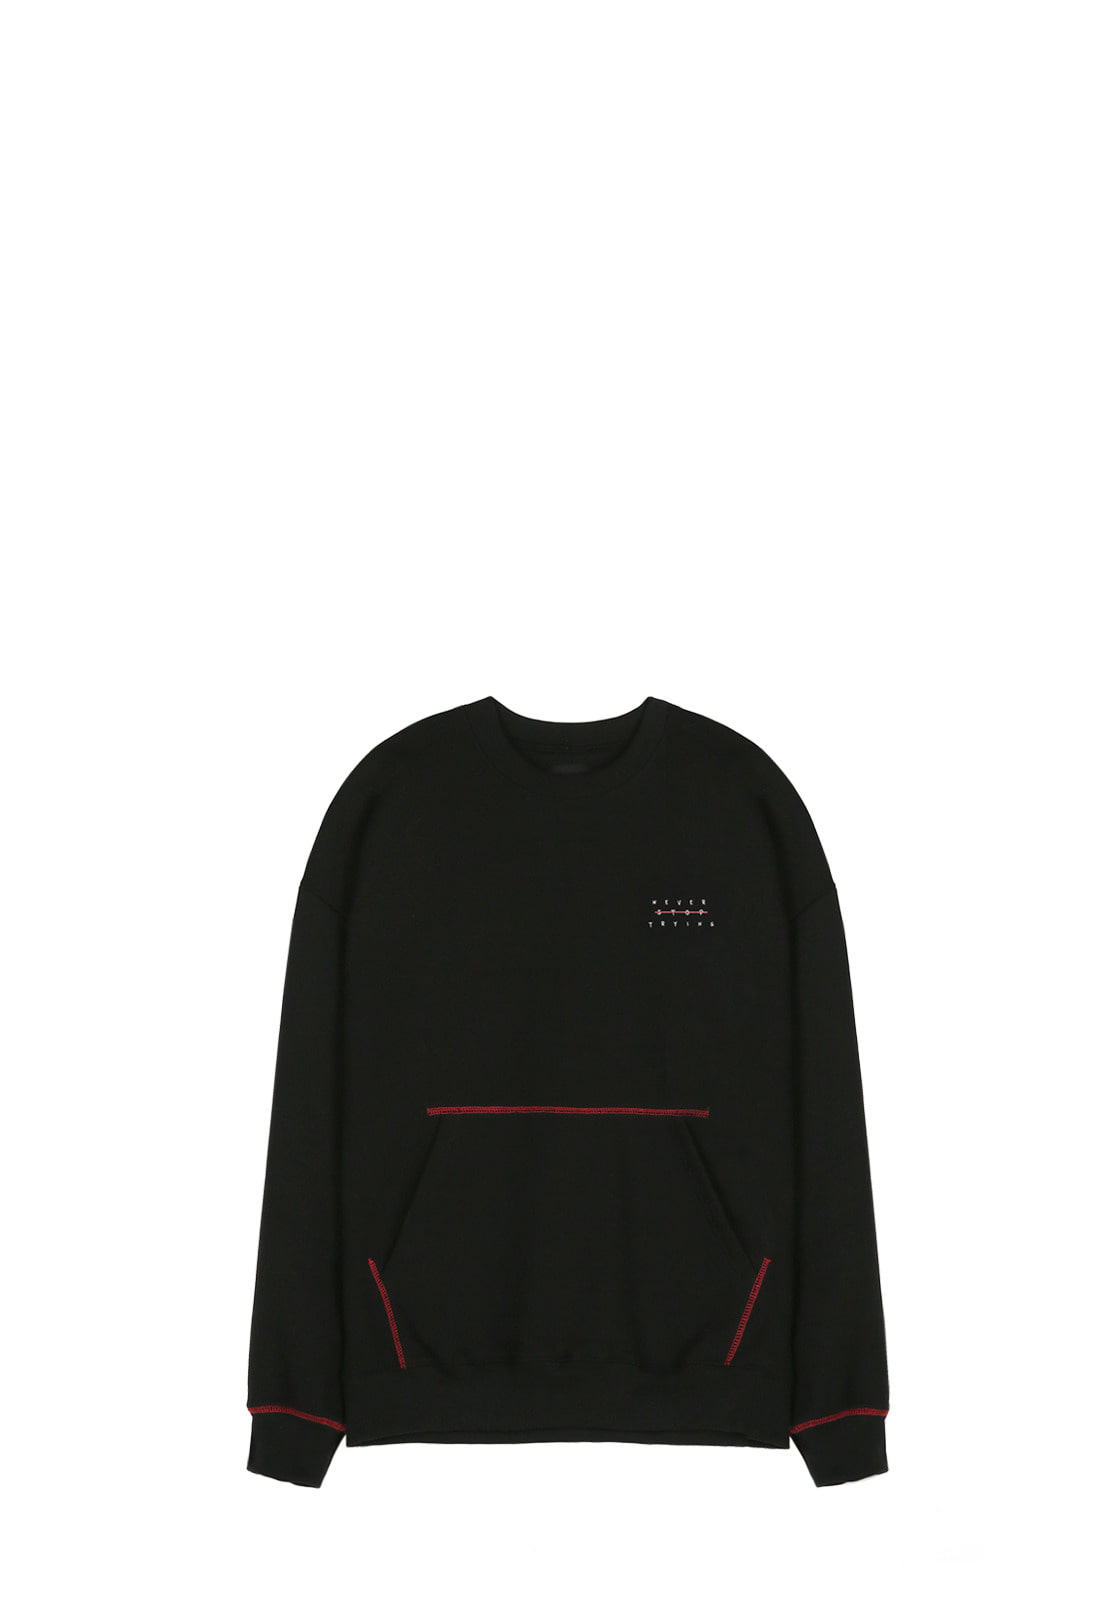 V342 POCKET STITCH SWEATSHIRT  BLACK